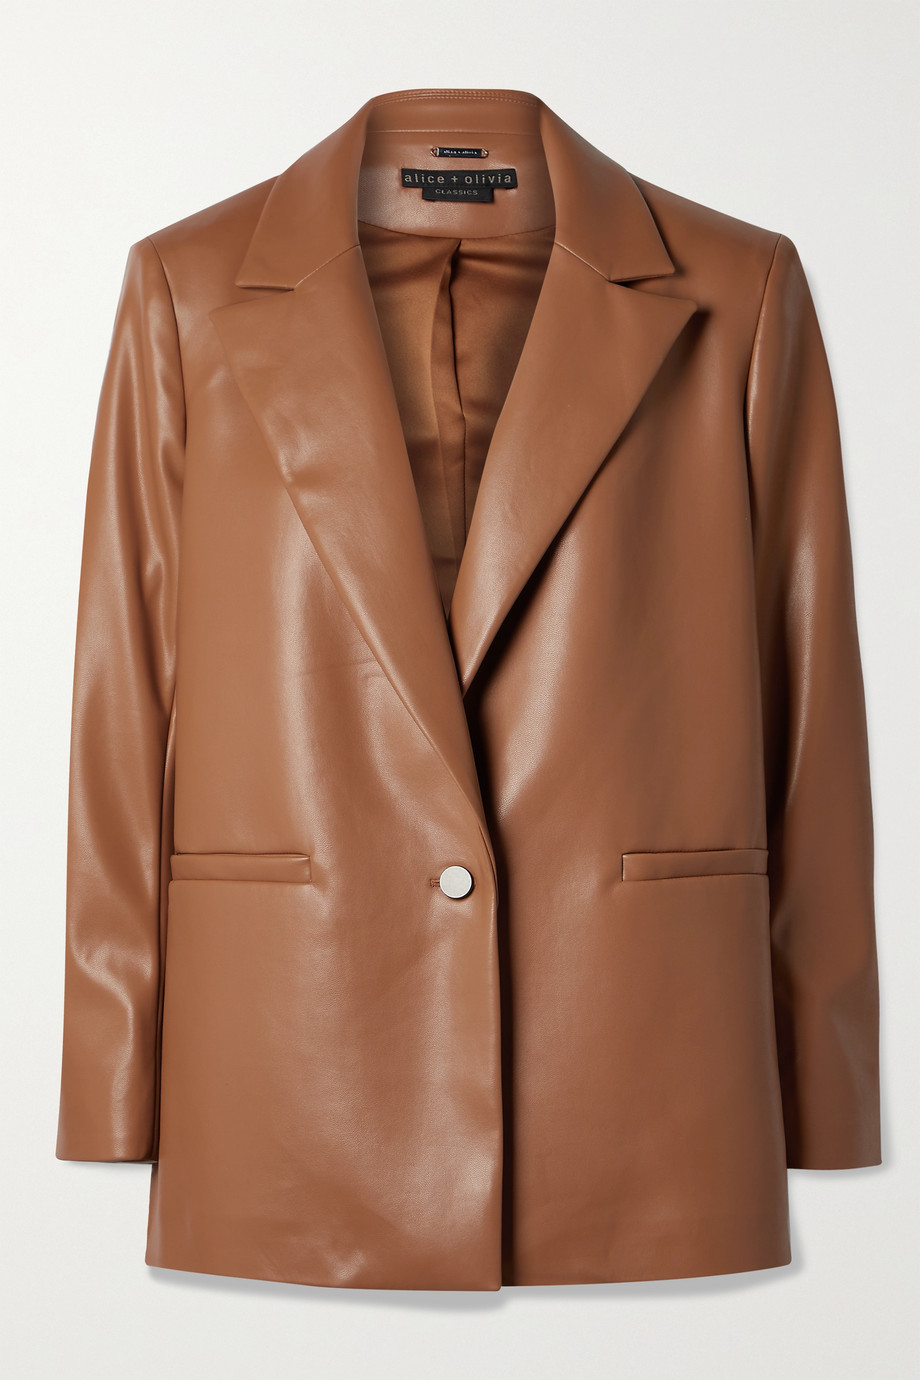 Alice + Olivia Dunn vegan leather blazer